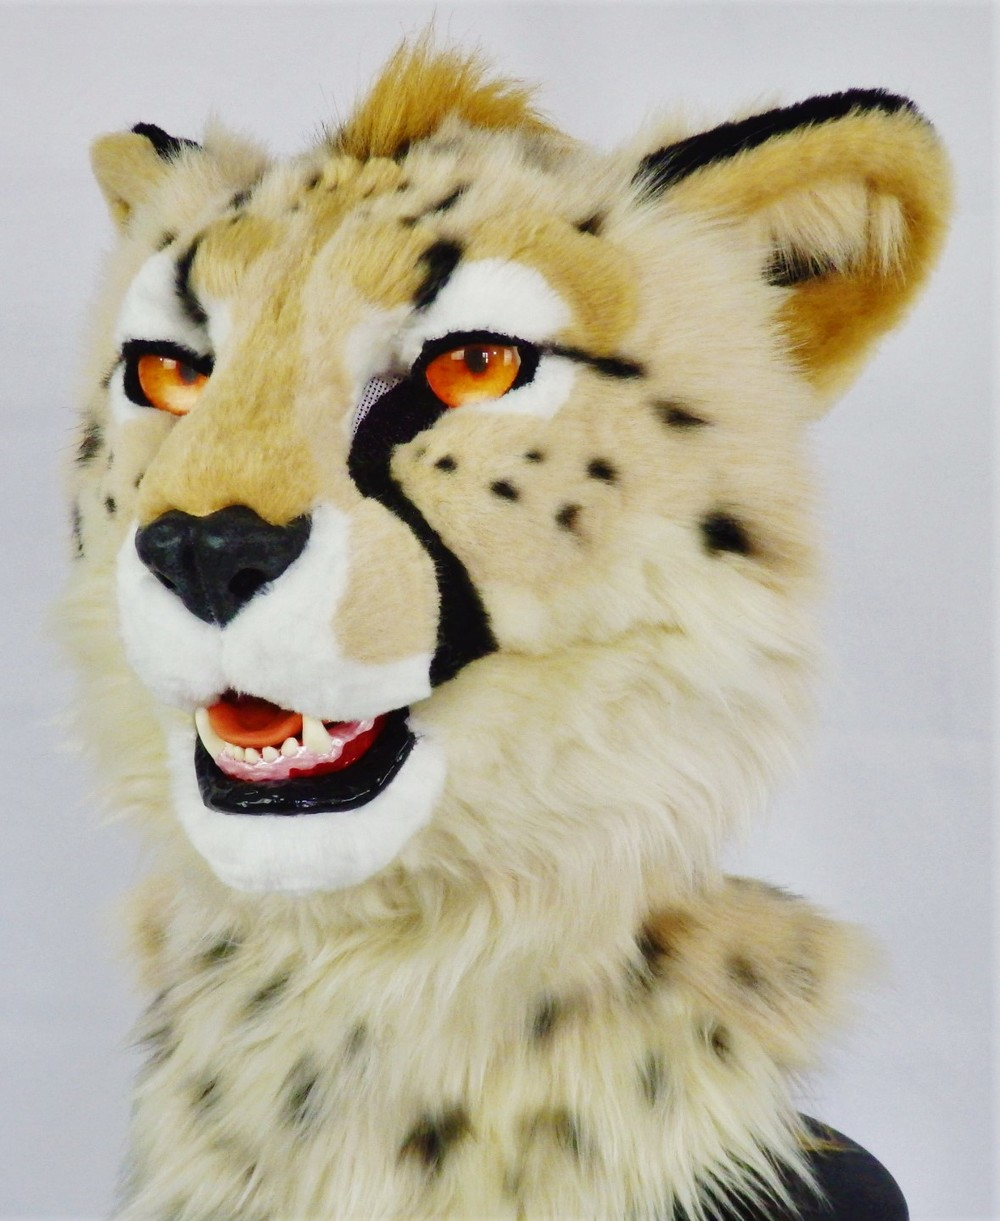 This Cheetah head made a record breaking $950 at the Texas Furry Fiesta 2016 Charity Auction. All proceeds went to C.A.R.E. the Center for Animal Research and Education.